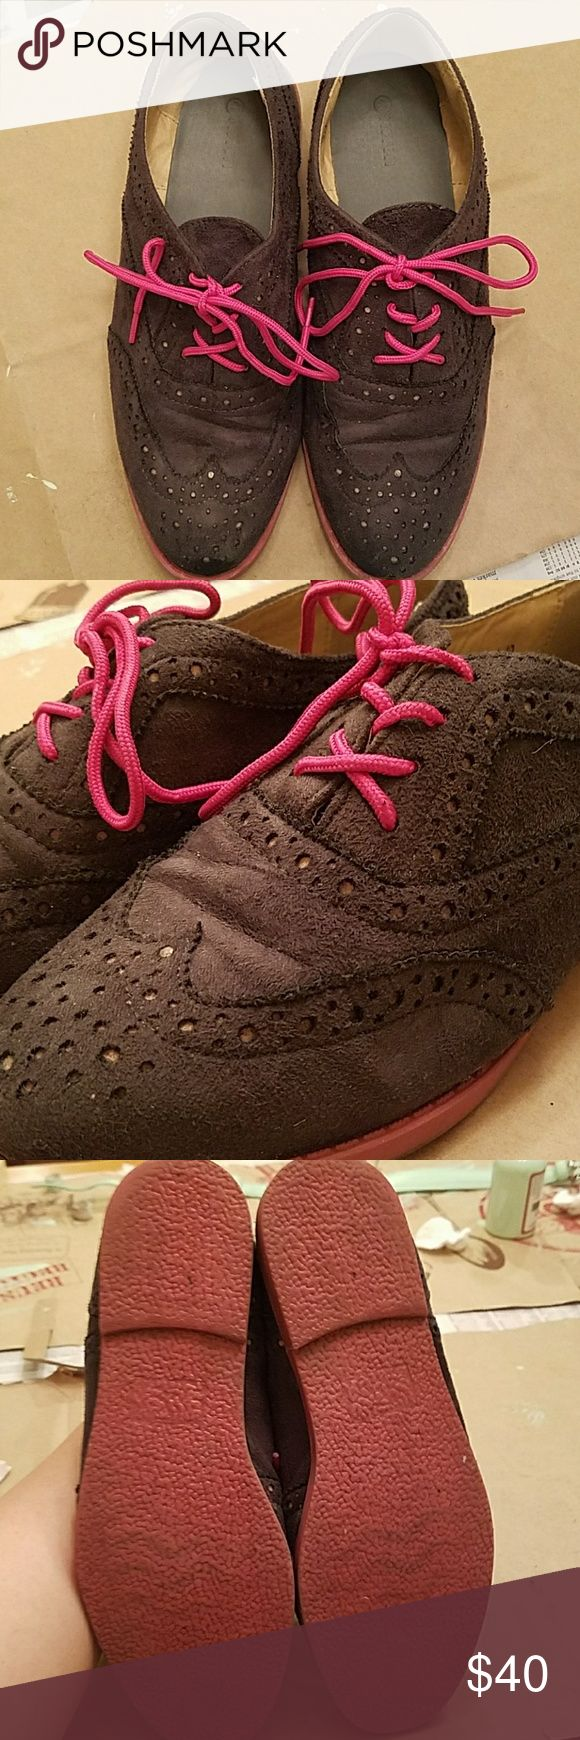 Gray faux suede oxfords with fuschia pink laces Very good condition gray faux suede oxfords with pink laces. EUR size 40 which is approx USA size 9. Worn a couple of times. Never reach for them so like to destash! Shoes